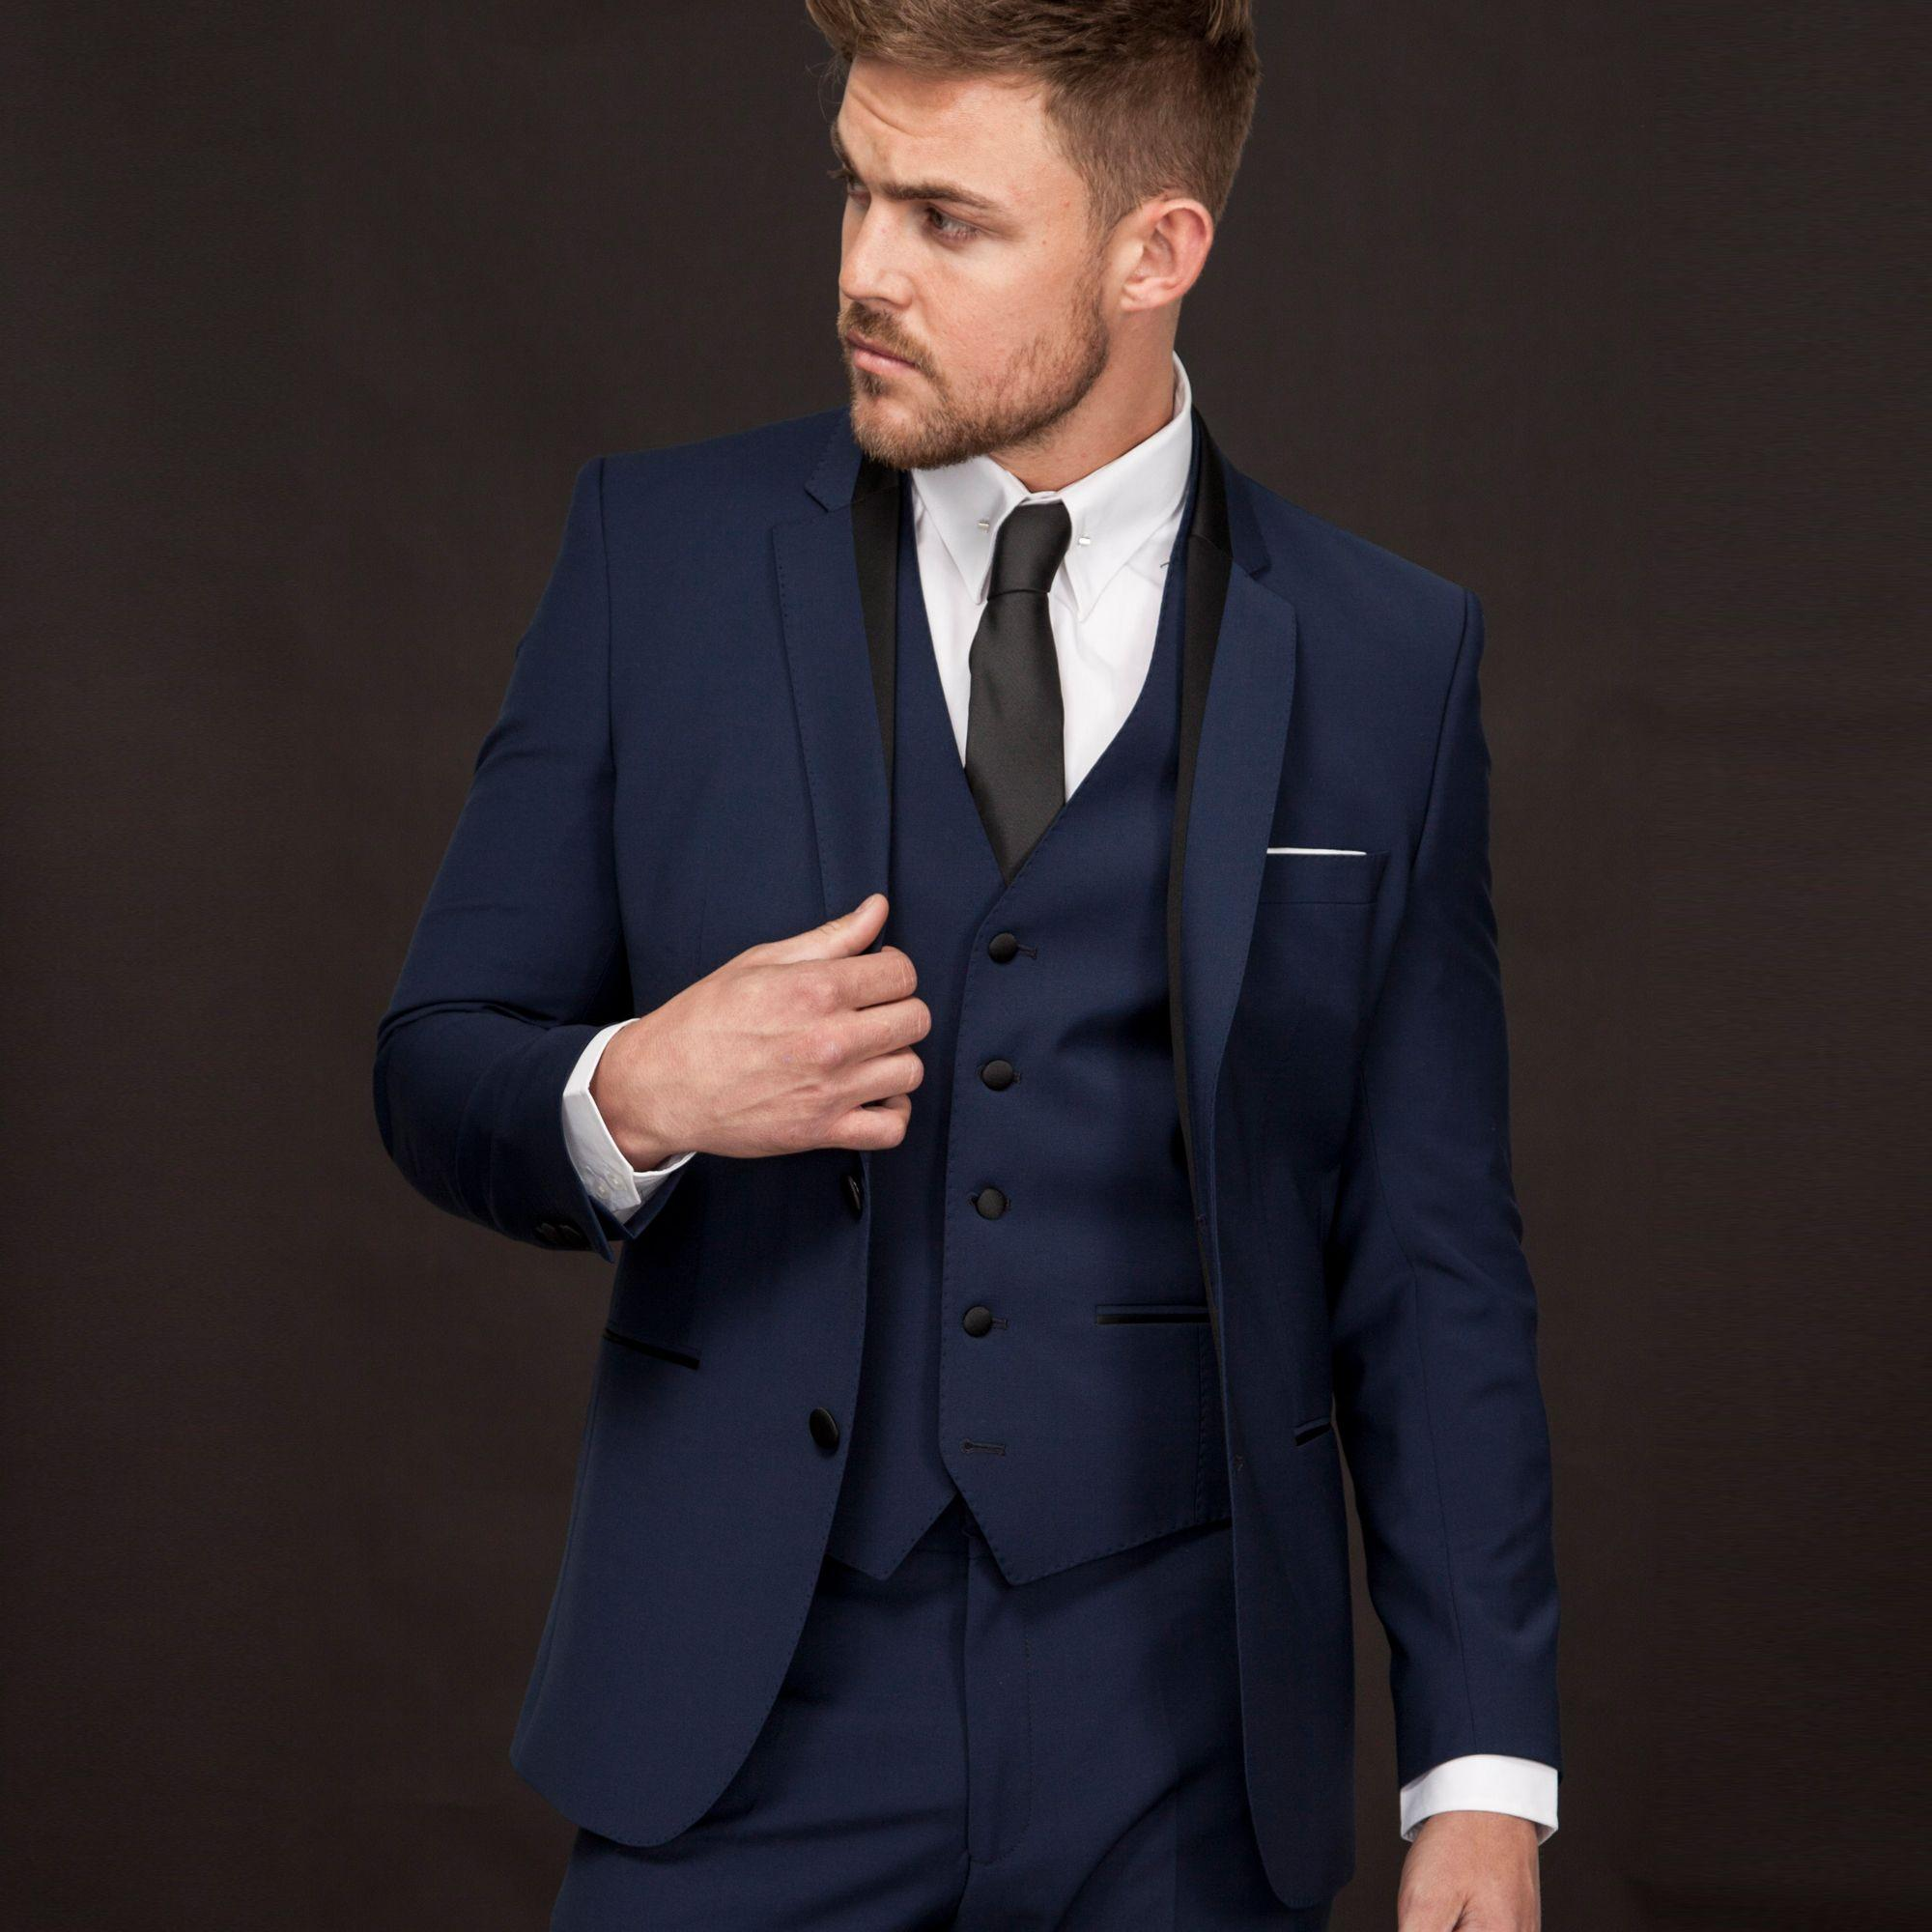 Blue Groom Tuxedos Notched Lapel Wedding Suits for Men Formal Groom ...